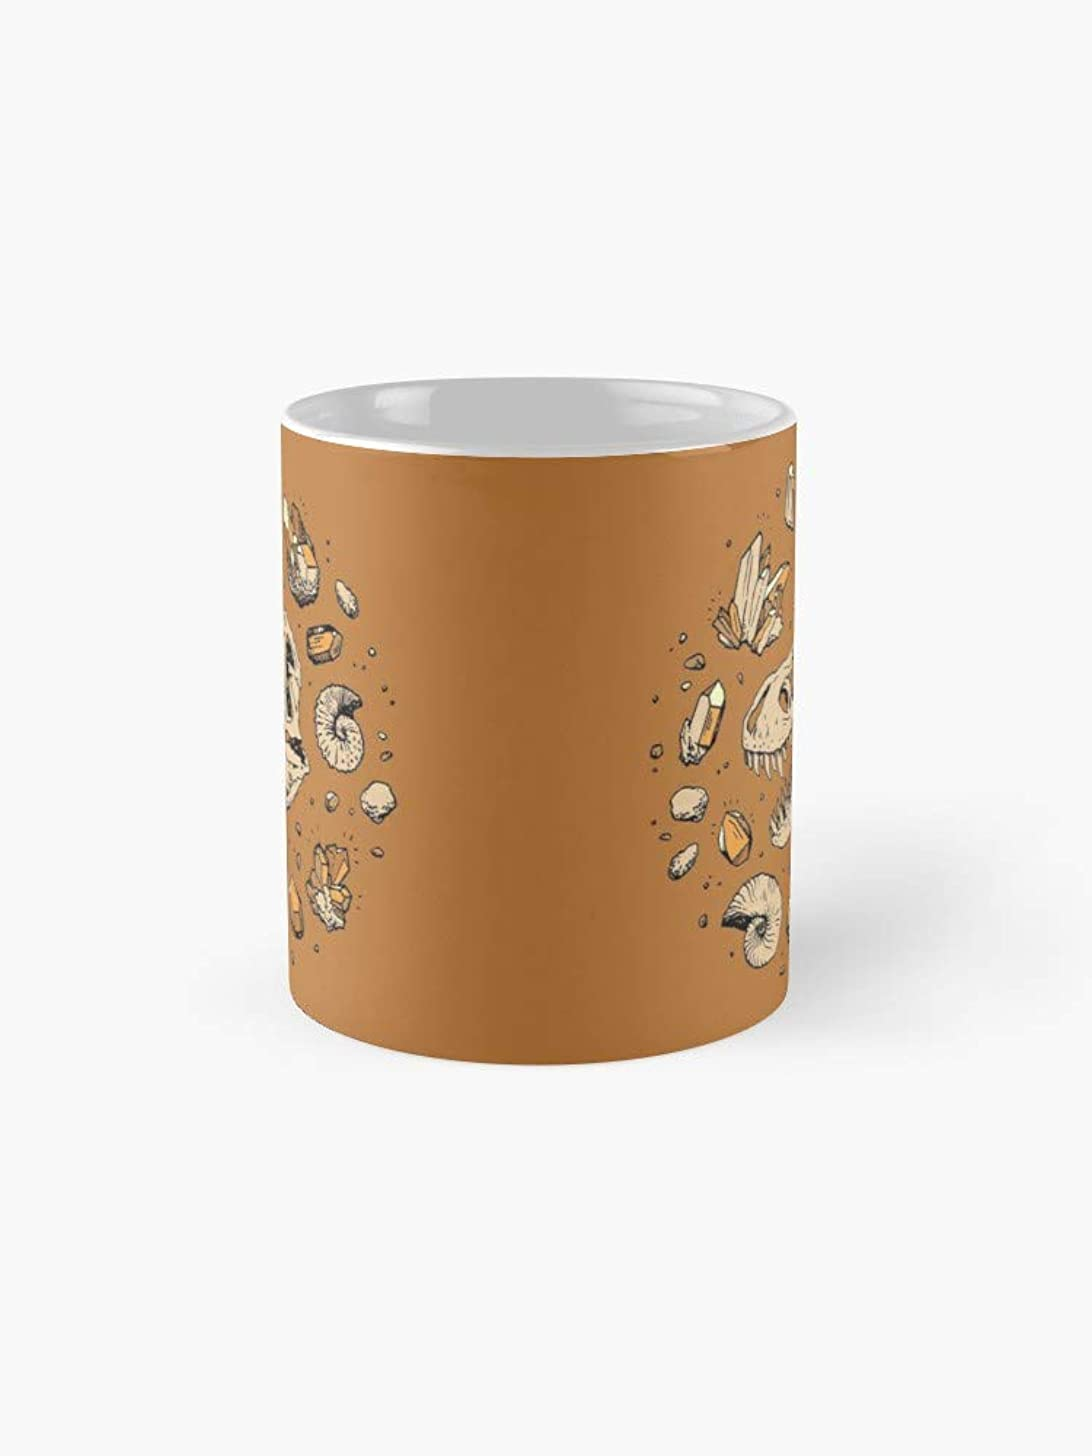 Georex Vortex Quartz Mug - 11oz - The most meaningful gift for family and friends.